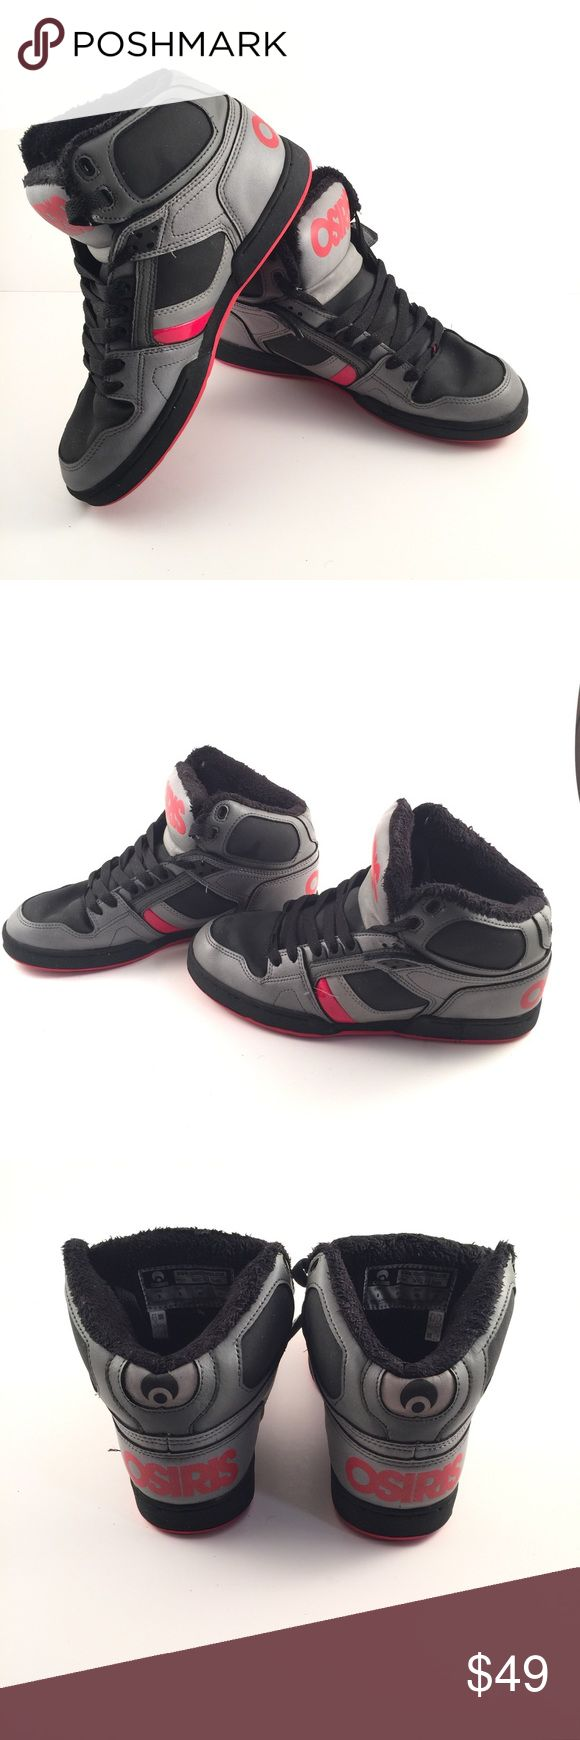 Osiris Size 9 NYC 83 SHR Skate Shoe Black Grey Red Men's Osiris Size 9 NYC 83 SHR Skate Skateboard Shoes Kicks Black Grey Red. Osiris is the brand to chose when it comes to skateboard shoes. These are well taken care of and have soft warm lining. Don't miss out! Osiris Shoes Sneakers